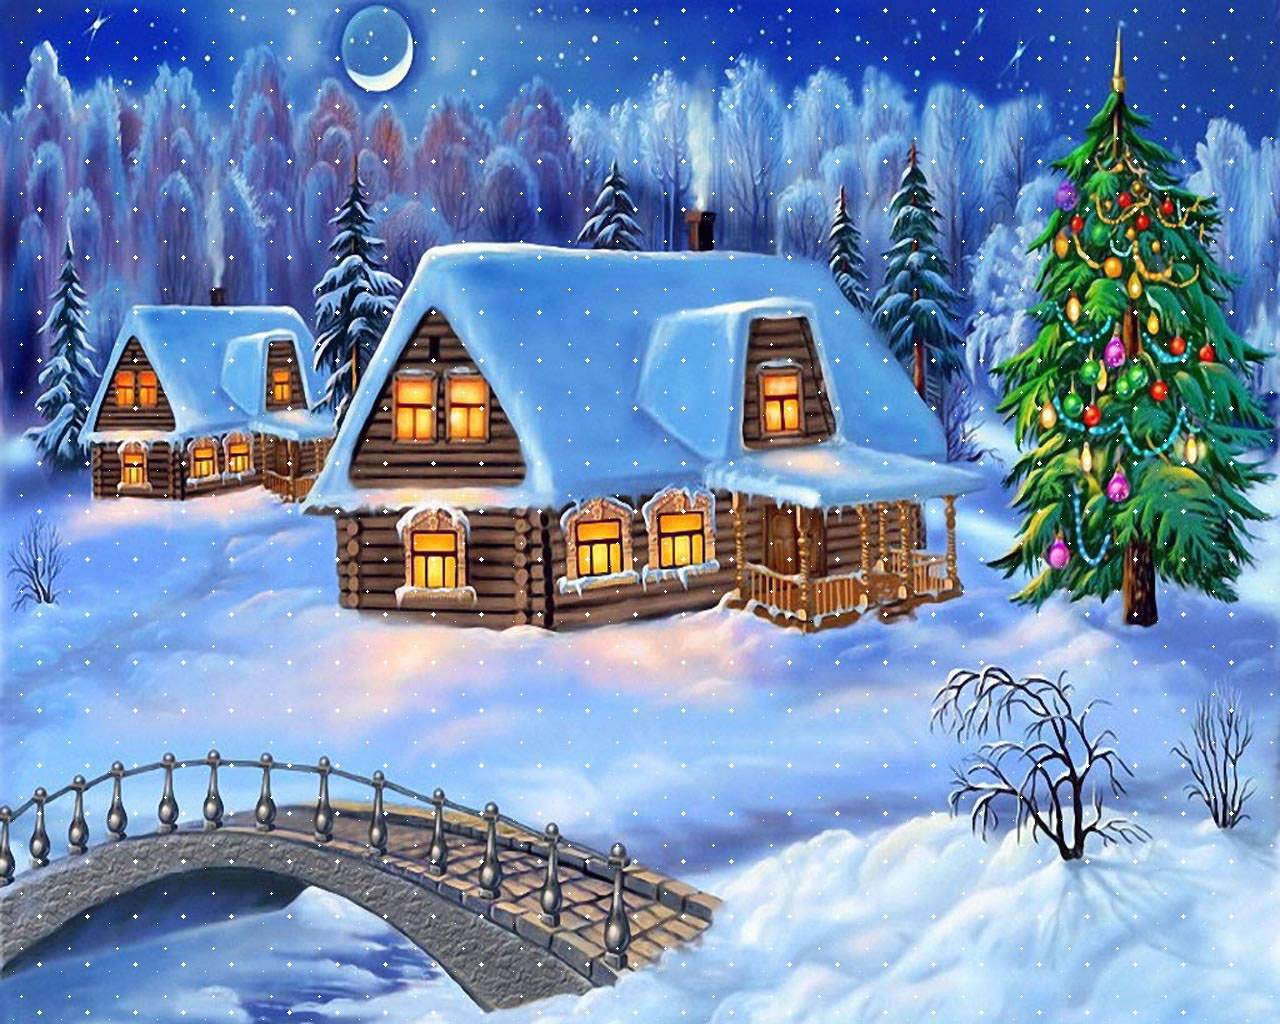 http://3.bp.blogspot.com/__j8j9lF2z78/TM2kPGH_N5I/AAAAAAAABOQ/QOvrd-kvX3s/s1600/PC-Wallpapers-on-Christmas-Theme.jpg